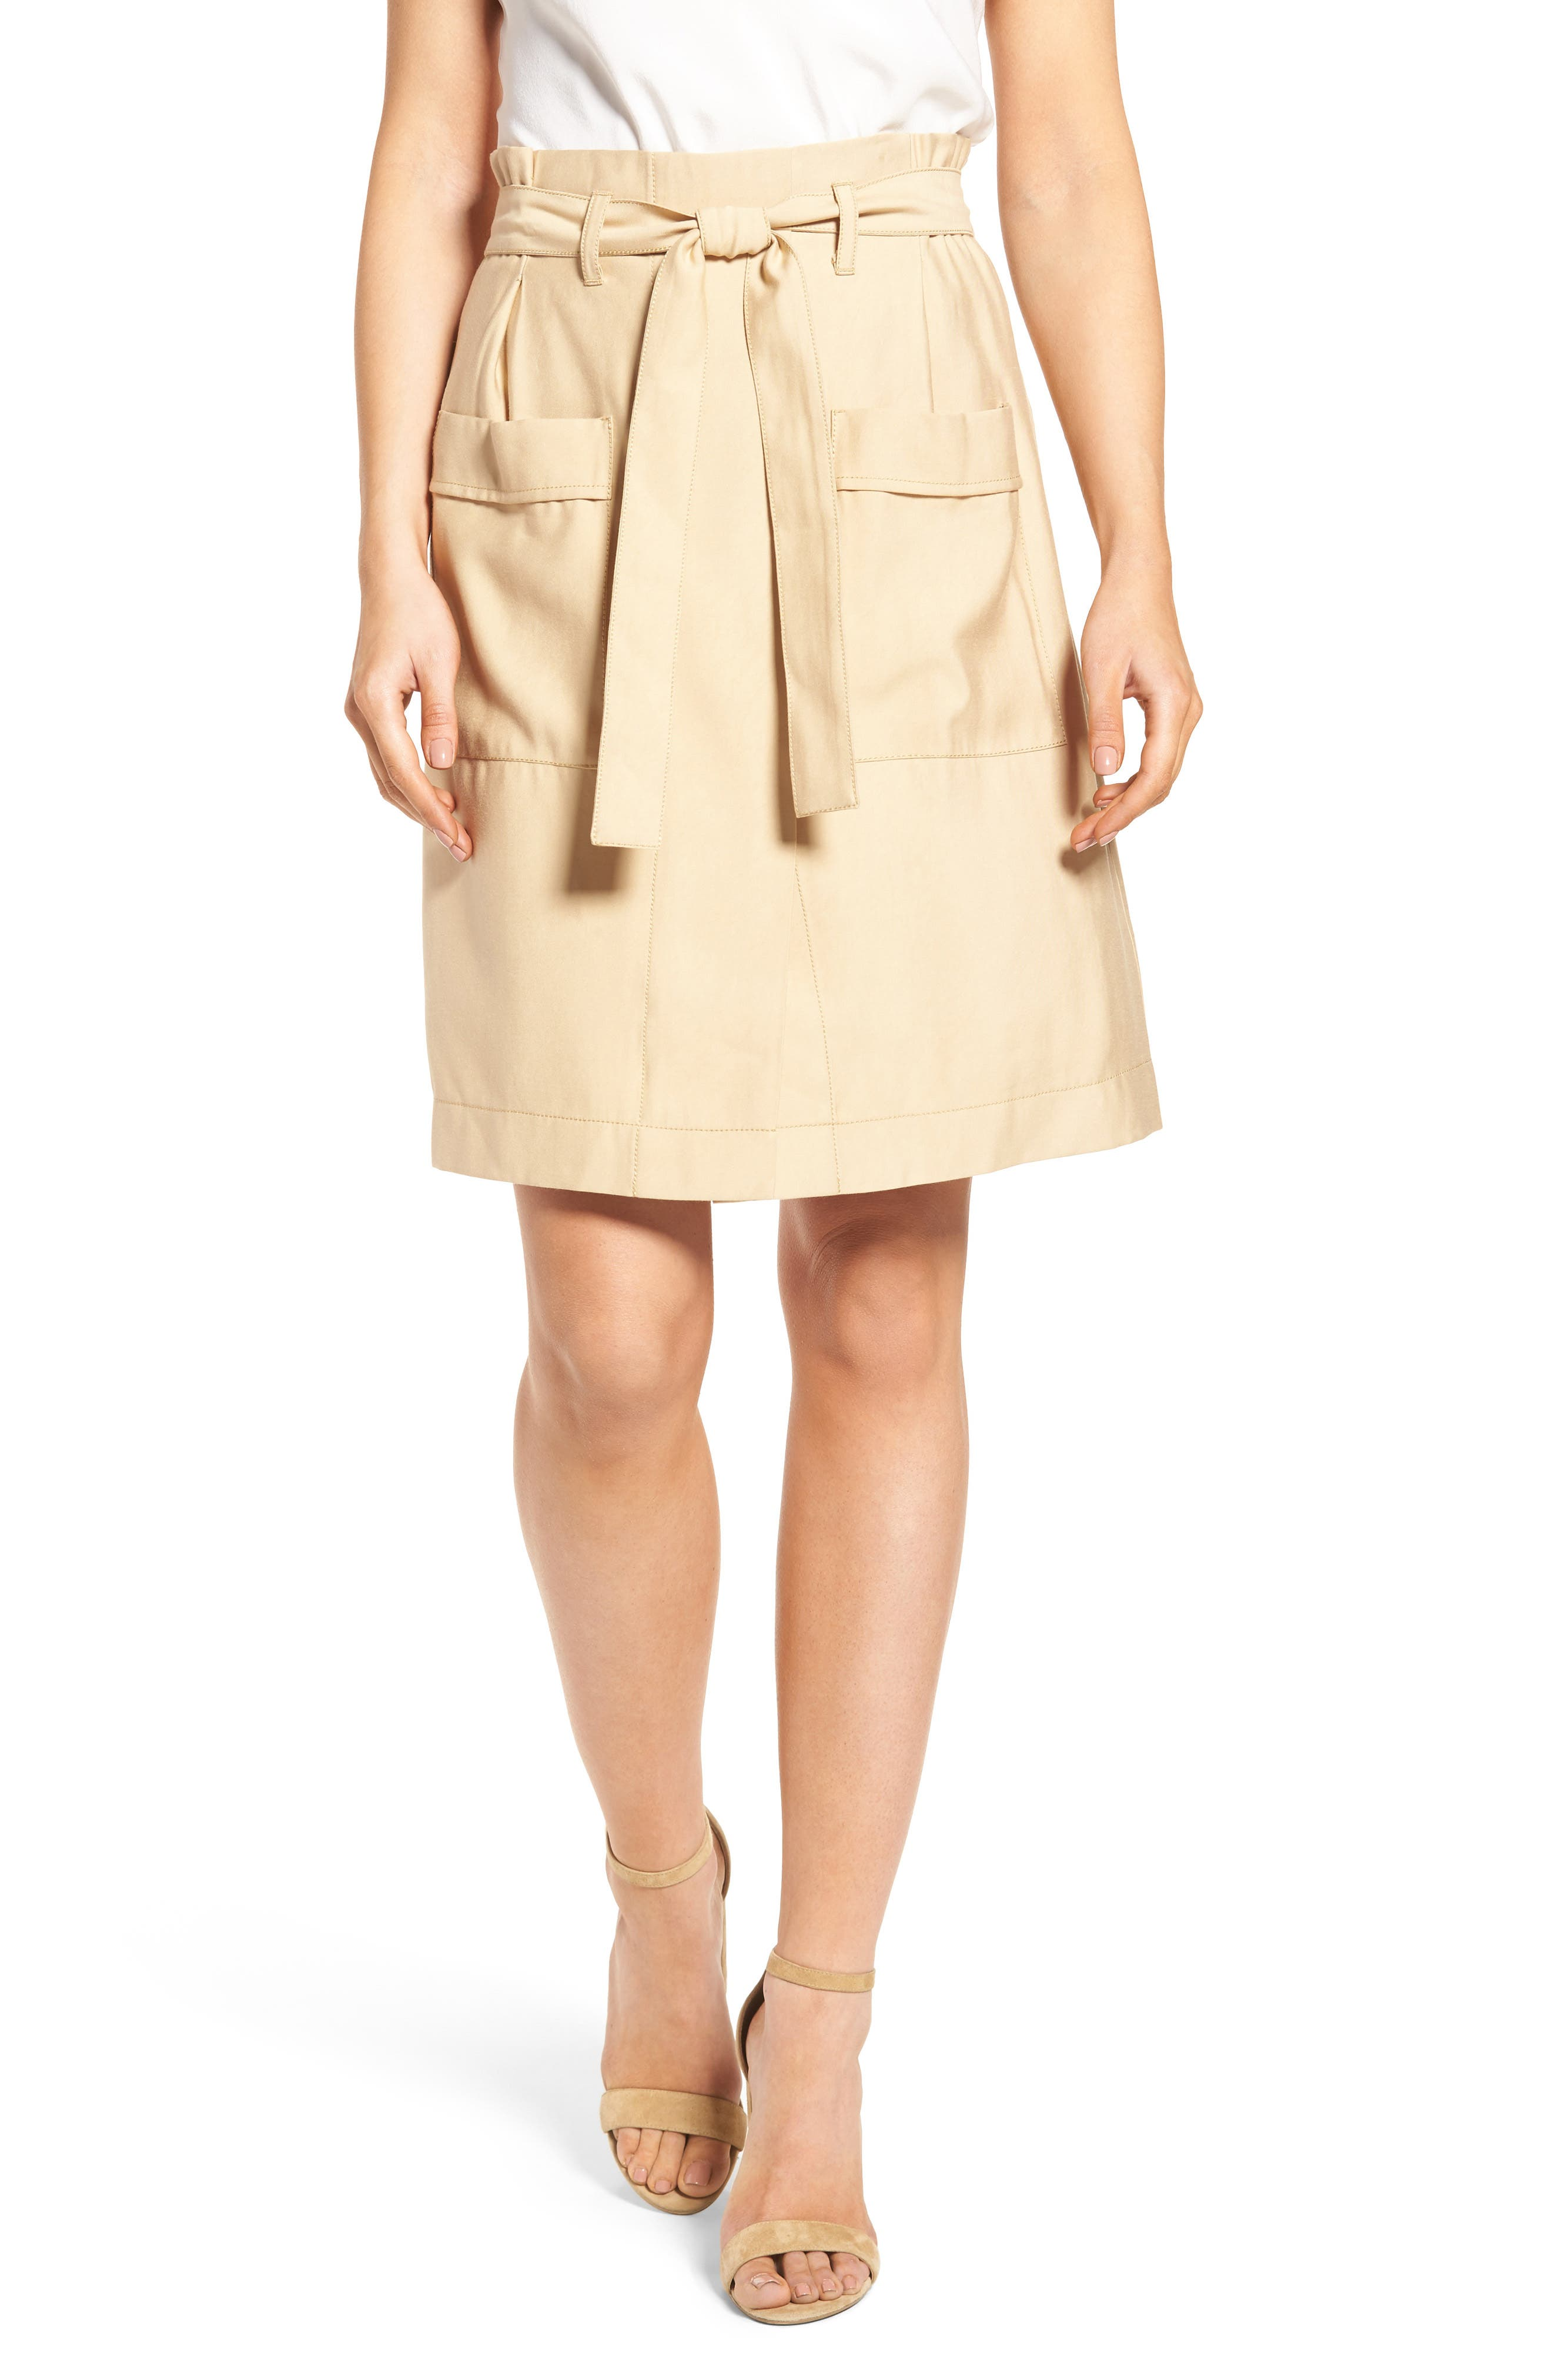 CATHERINE CATHERINE MALANDRINO, Tyra Belted Skirt, Main thumbnail 1, color, 283